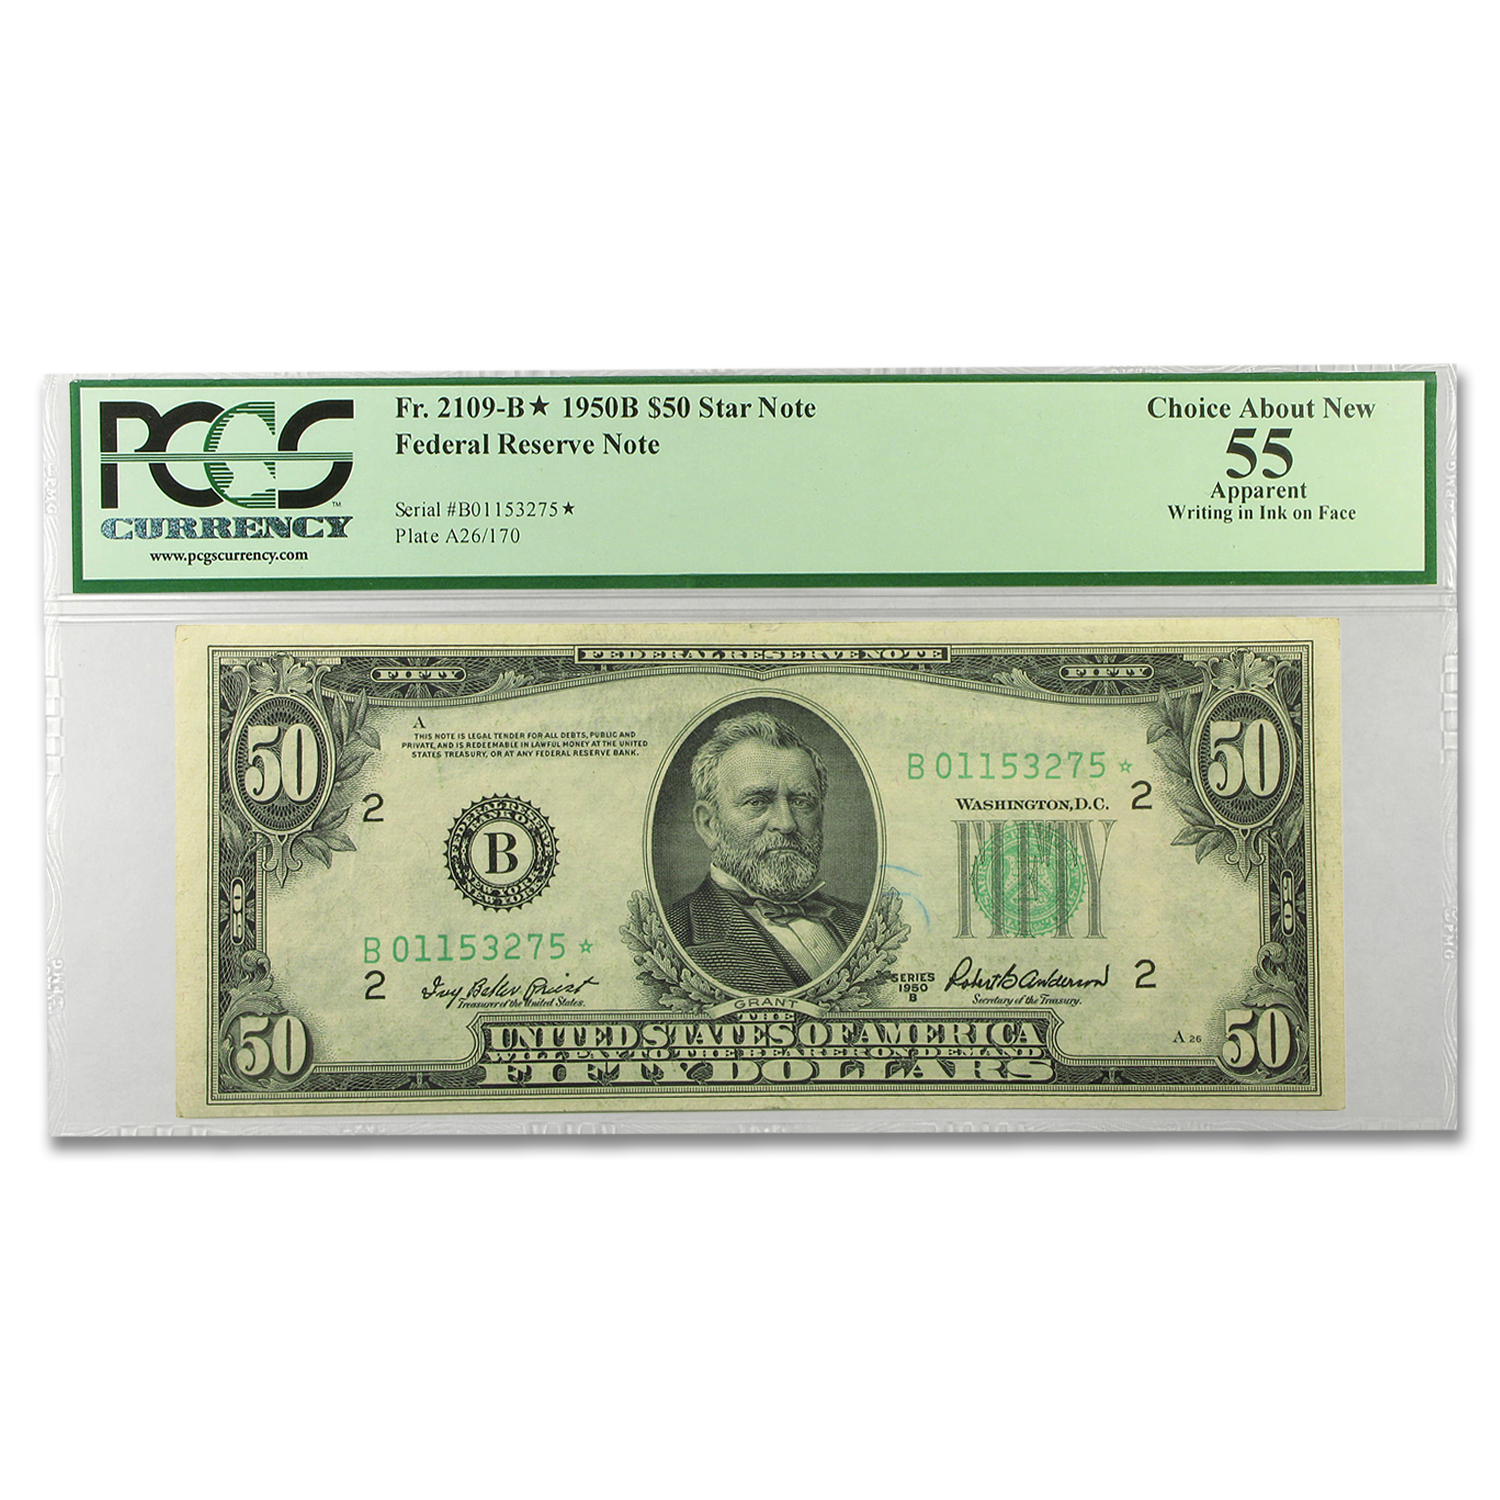 1950-B* (B-New York) $50 FRN Star Note AU-55 PCGS